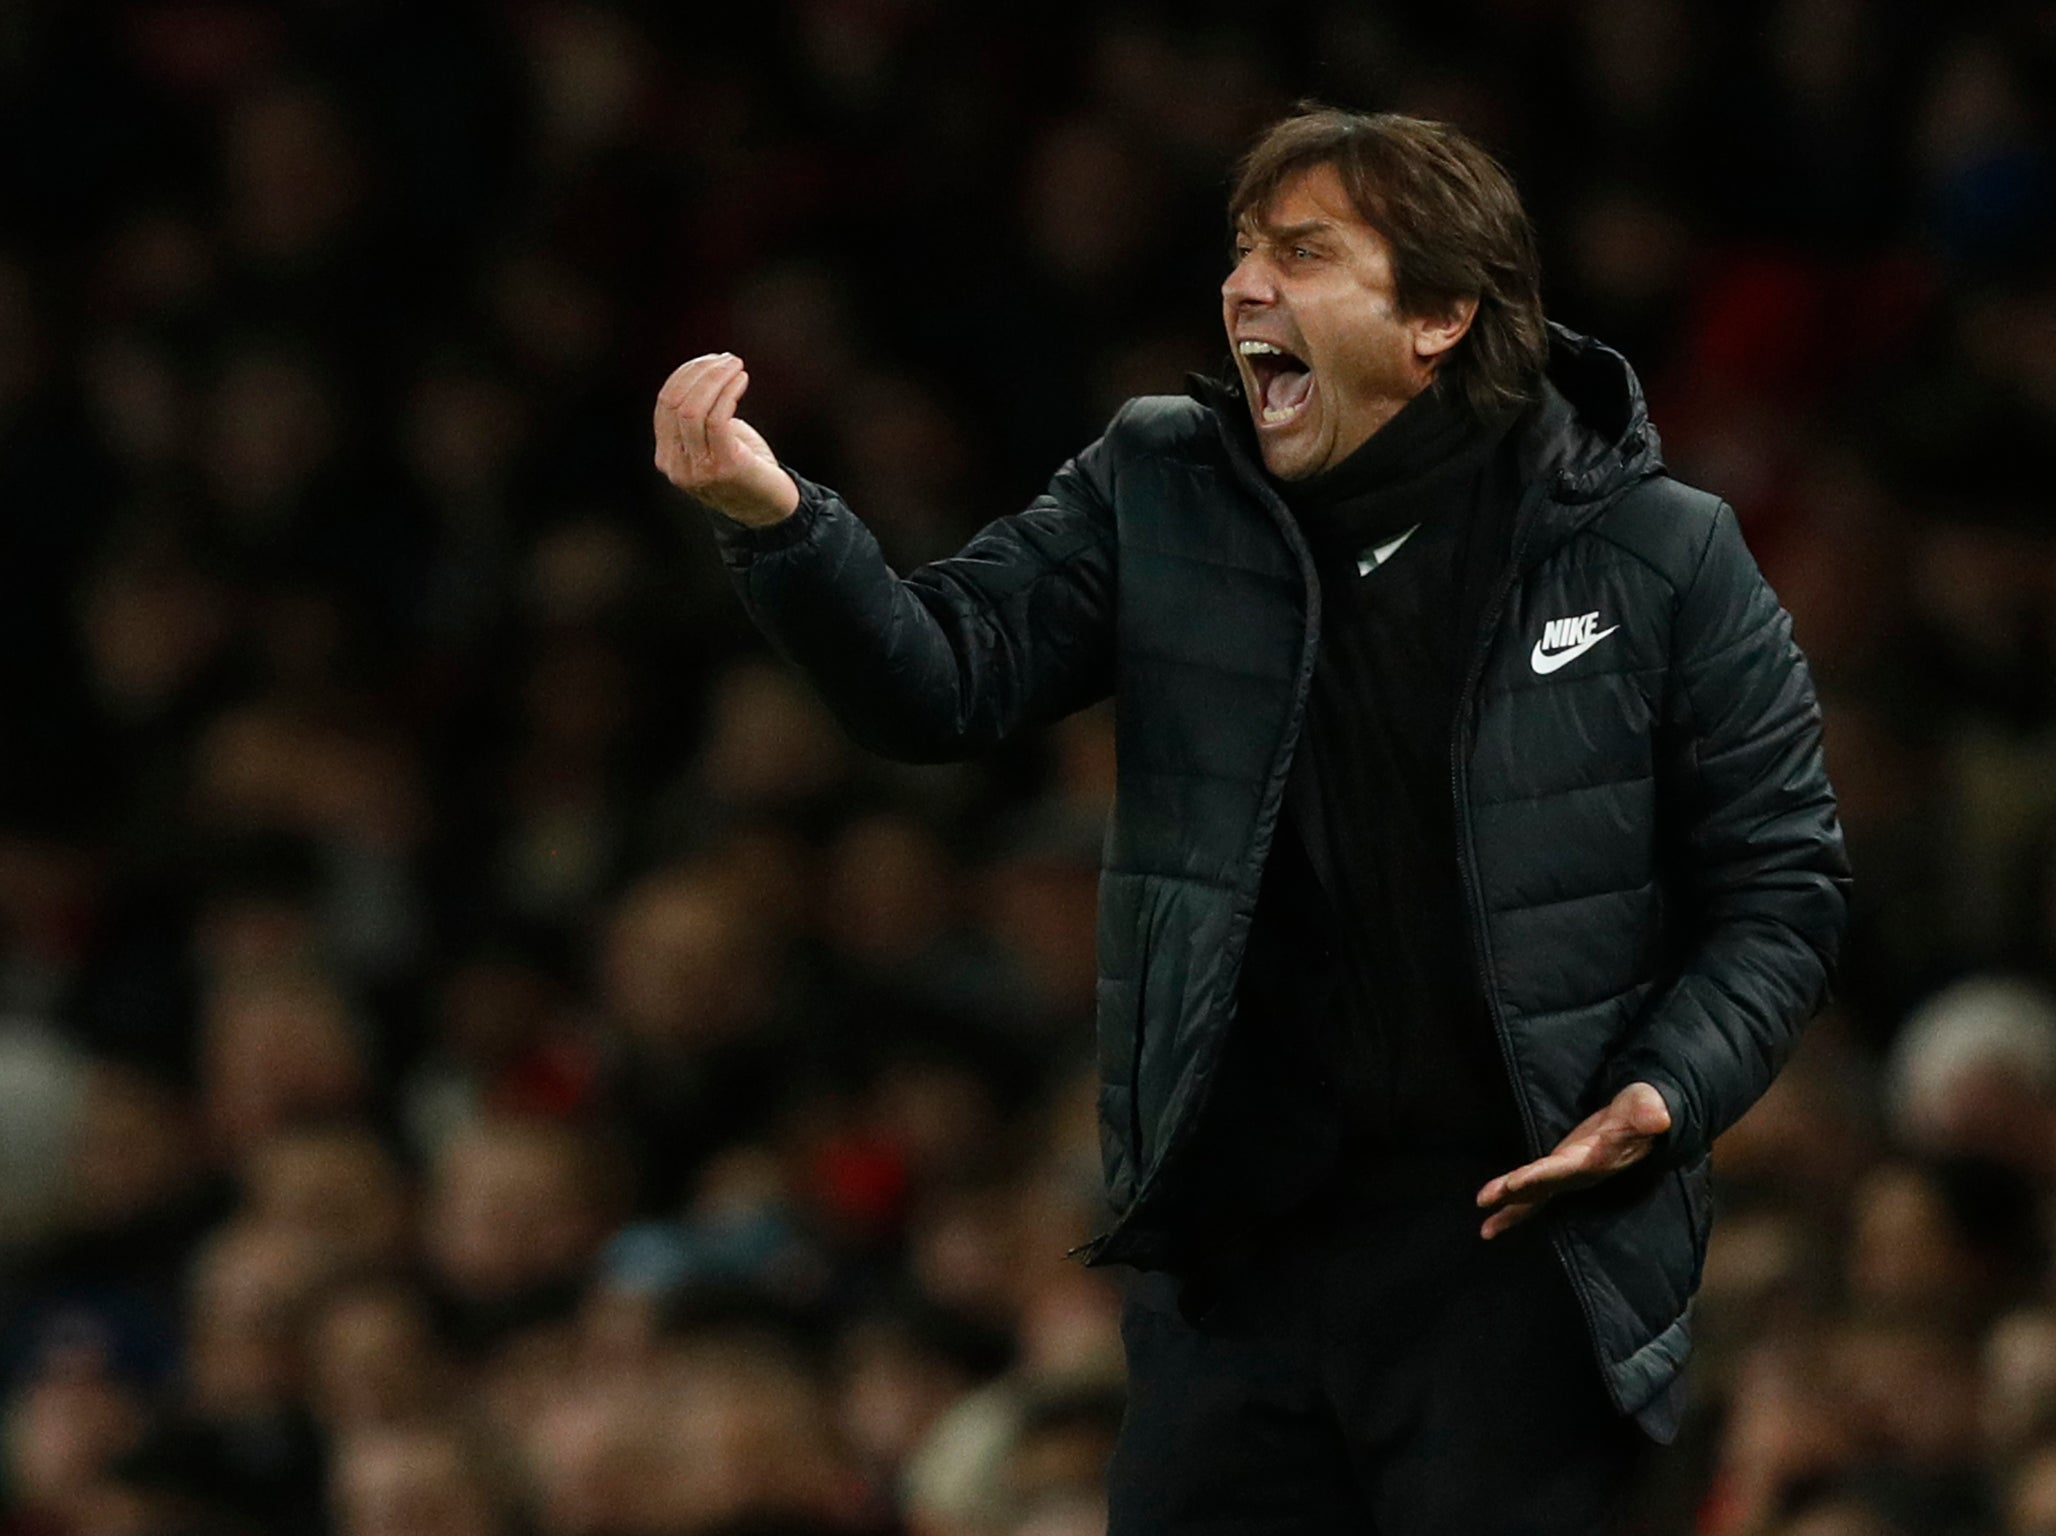 Antonio Conte says he is telling Alvaro Morata to 'keep calm' following difficult night against Arsenal